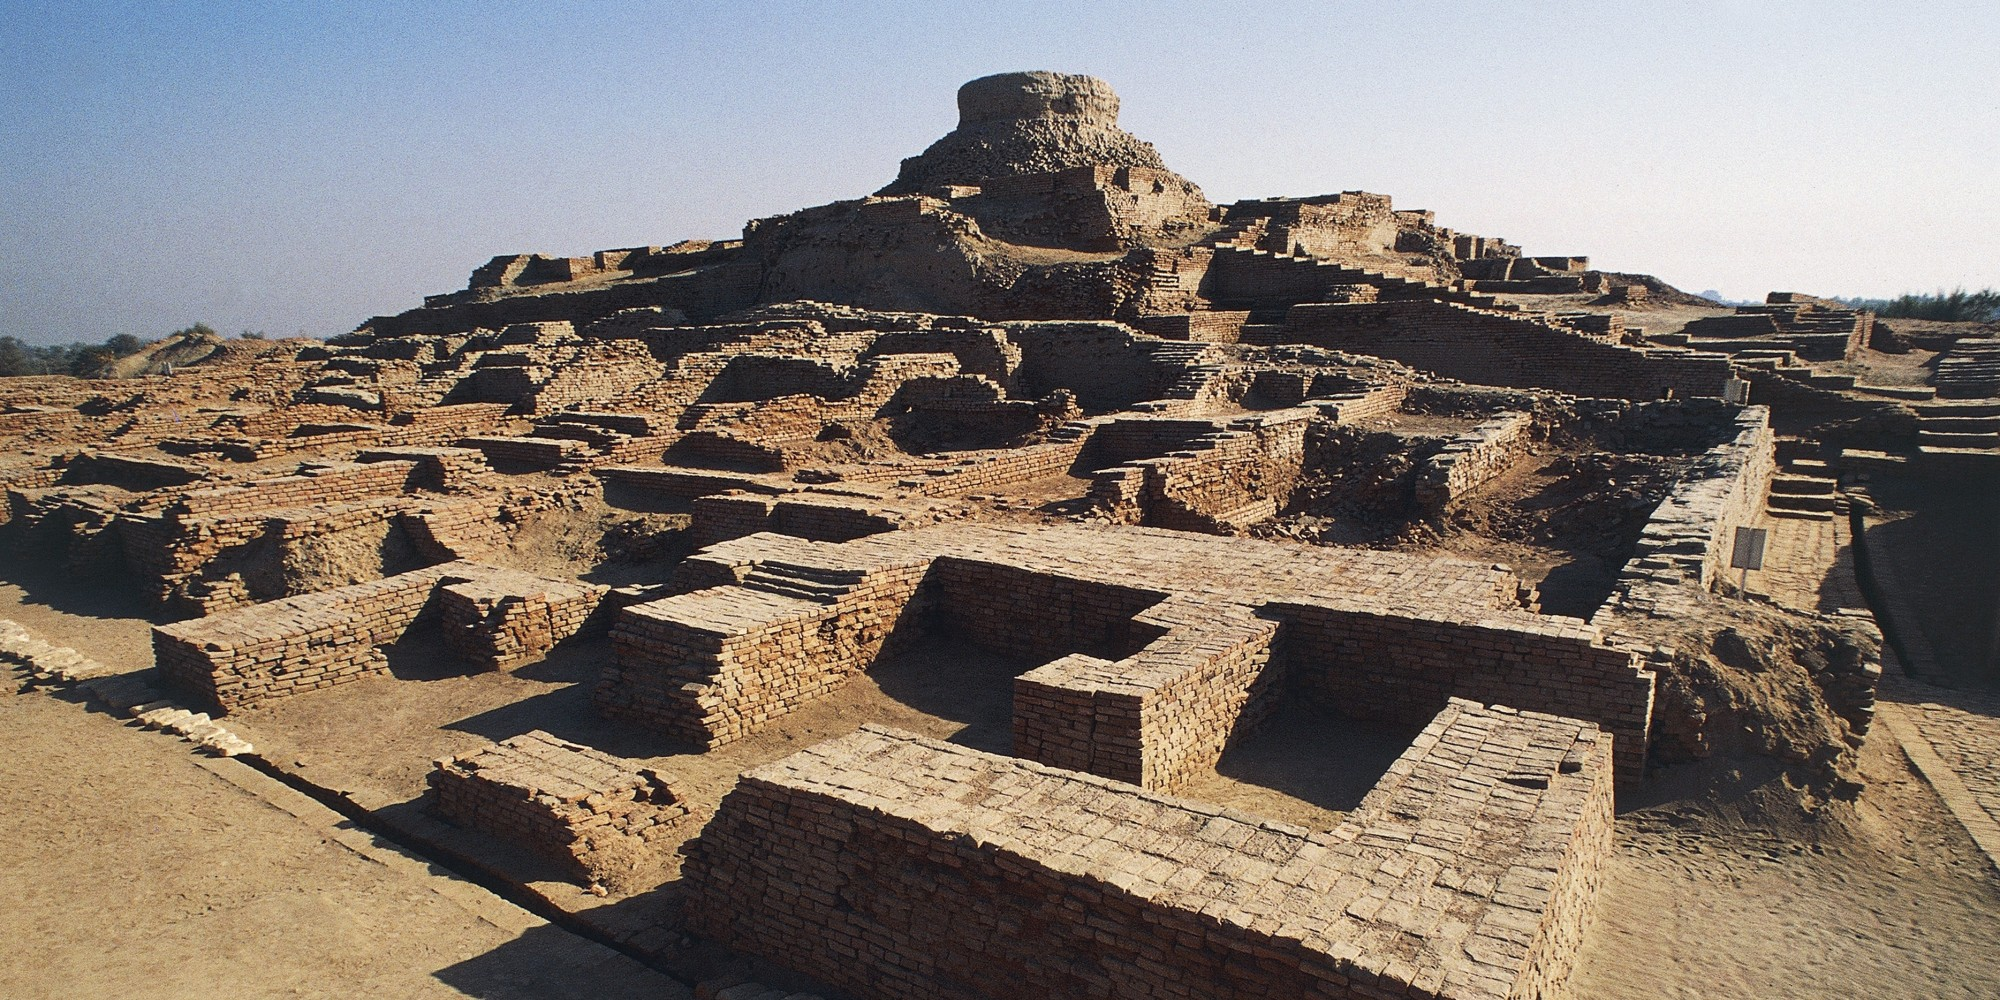 Long Term Drought Doomed Indus Valley Civilization